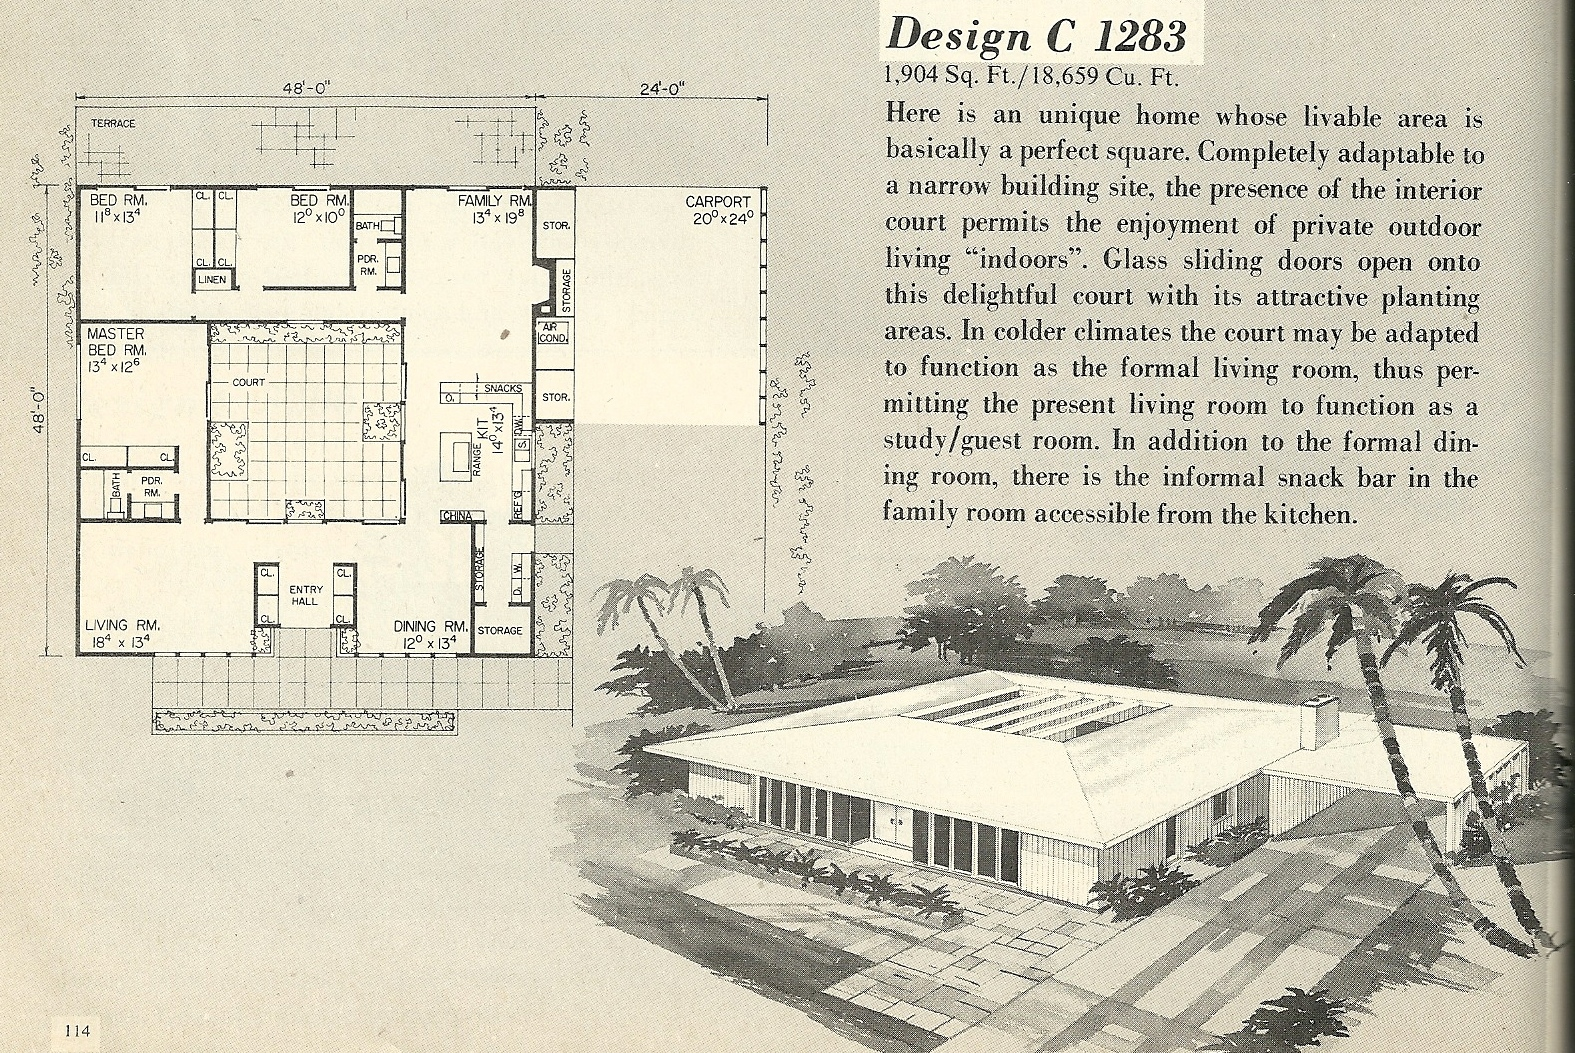 Vintage house plans 1283 antique alter ego for Retro modern house plans